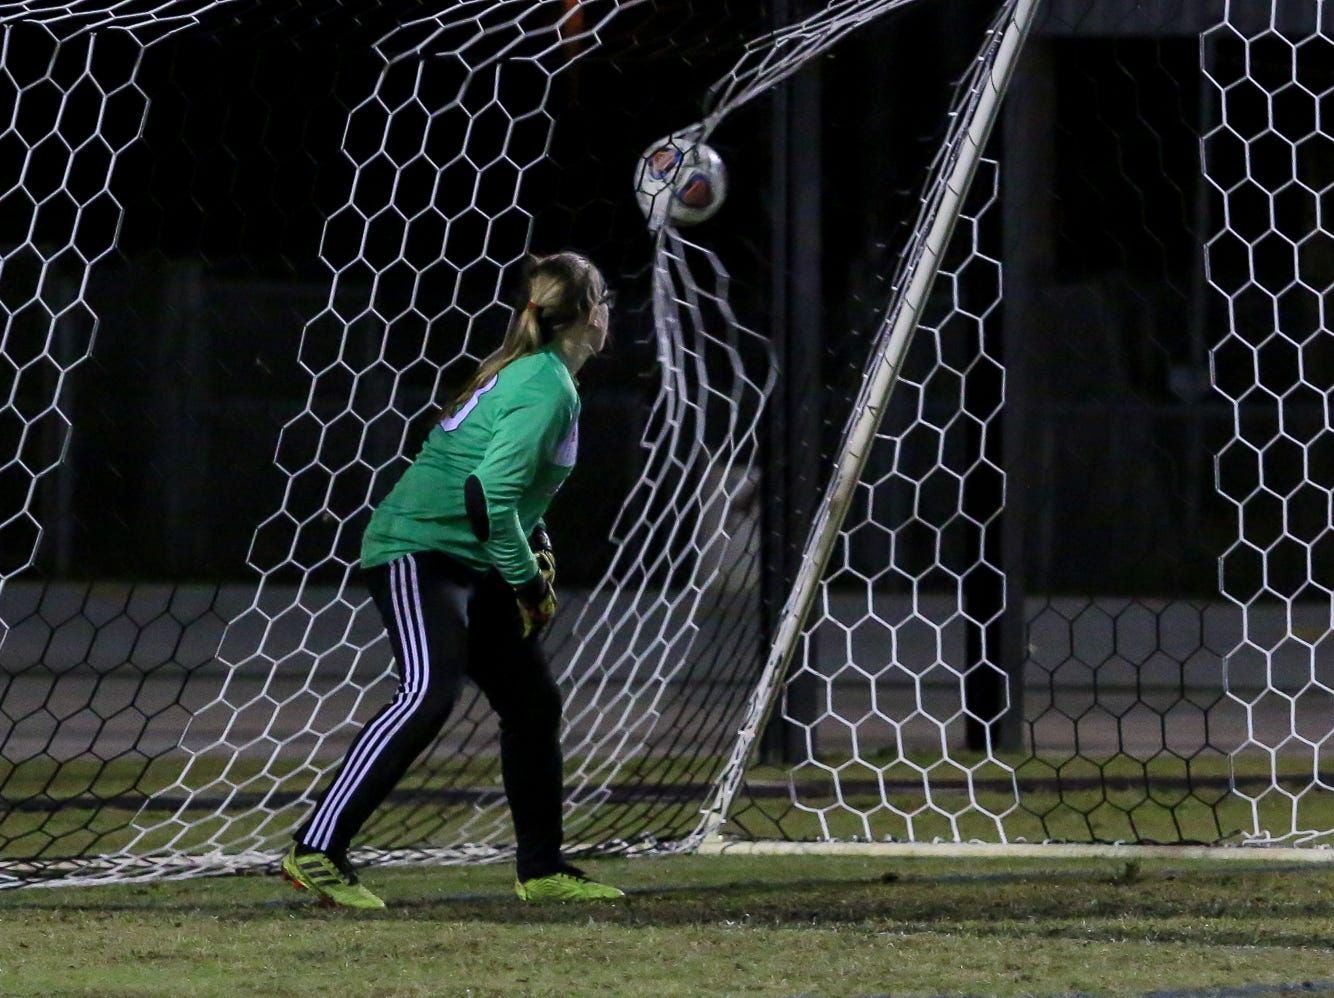 Niceville goaltender Megan Hague can only watch as a shot by Navarre's Jennifer Seward easily goes in for a point during a District 1-4A showdown of unbeaten teams at Navarre High School on Tuesday, December 4, 2018. The game ended in a 1-1 tie.